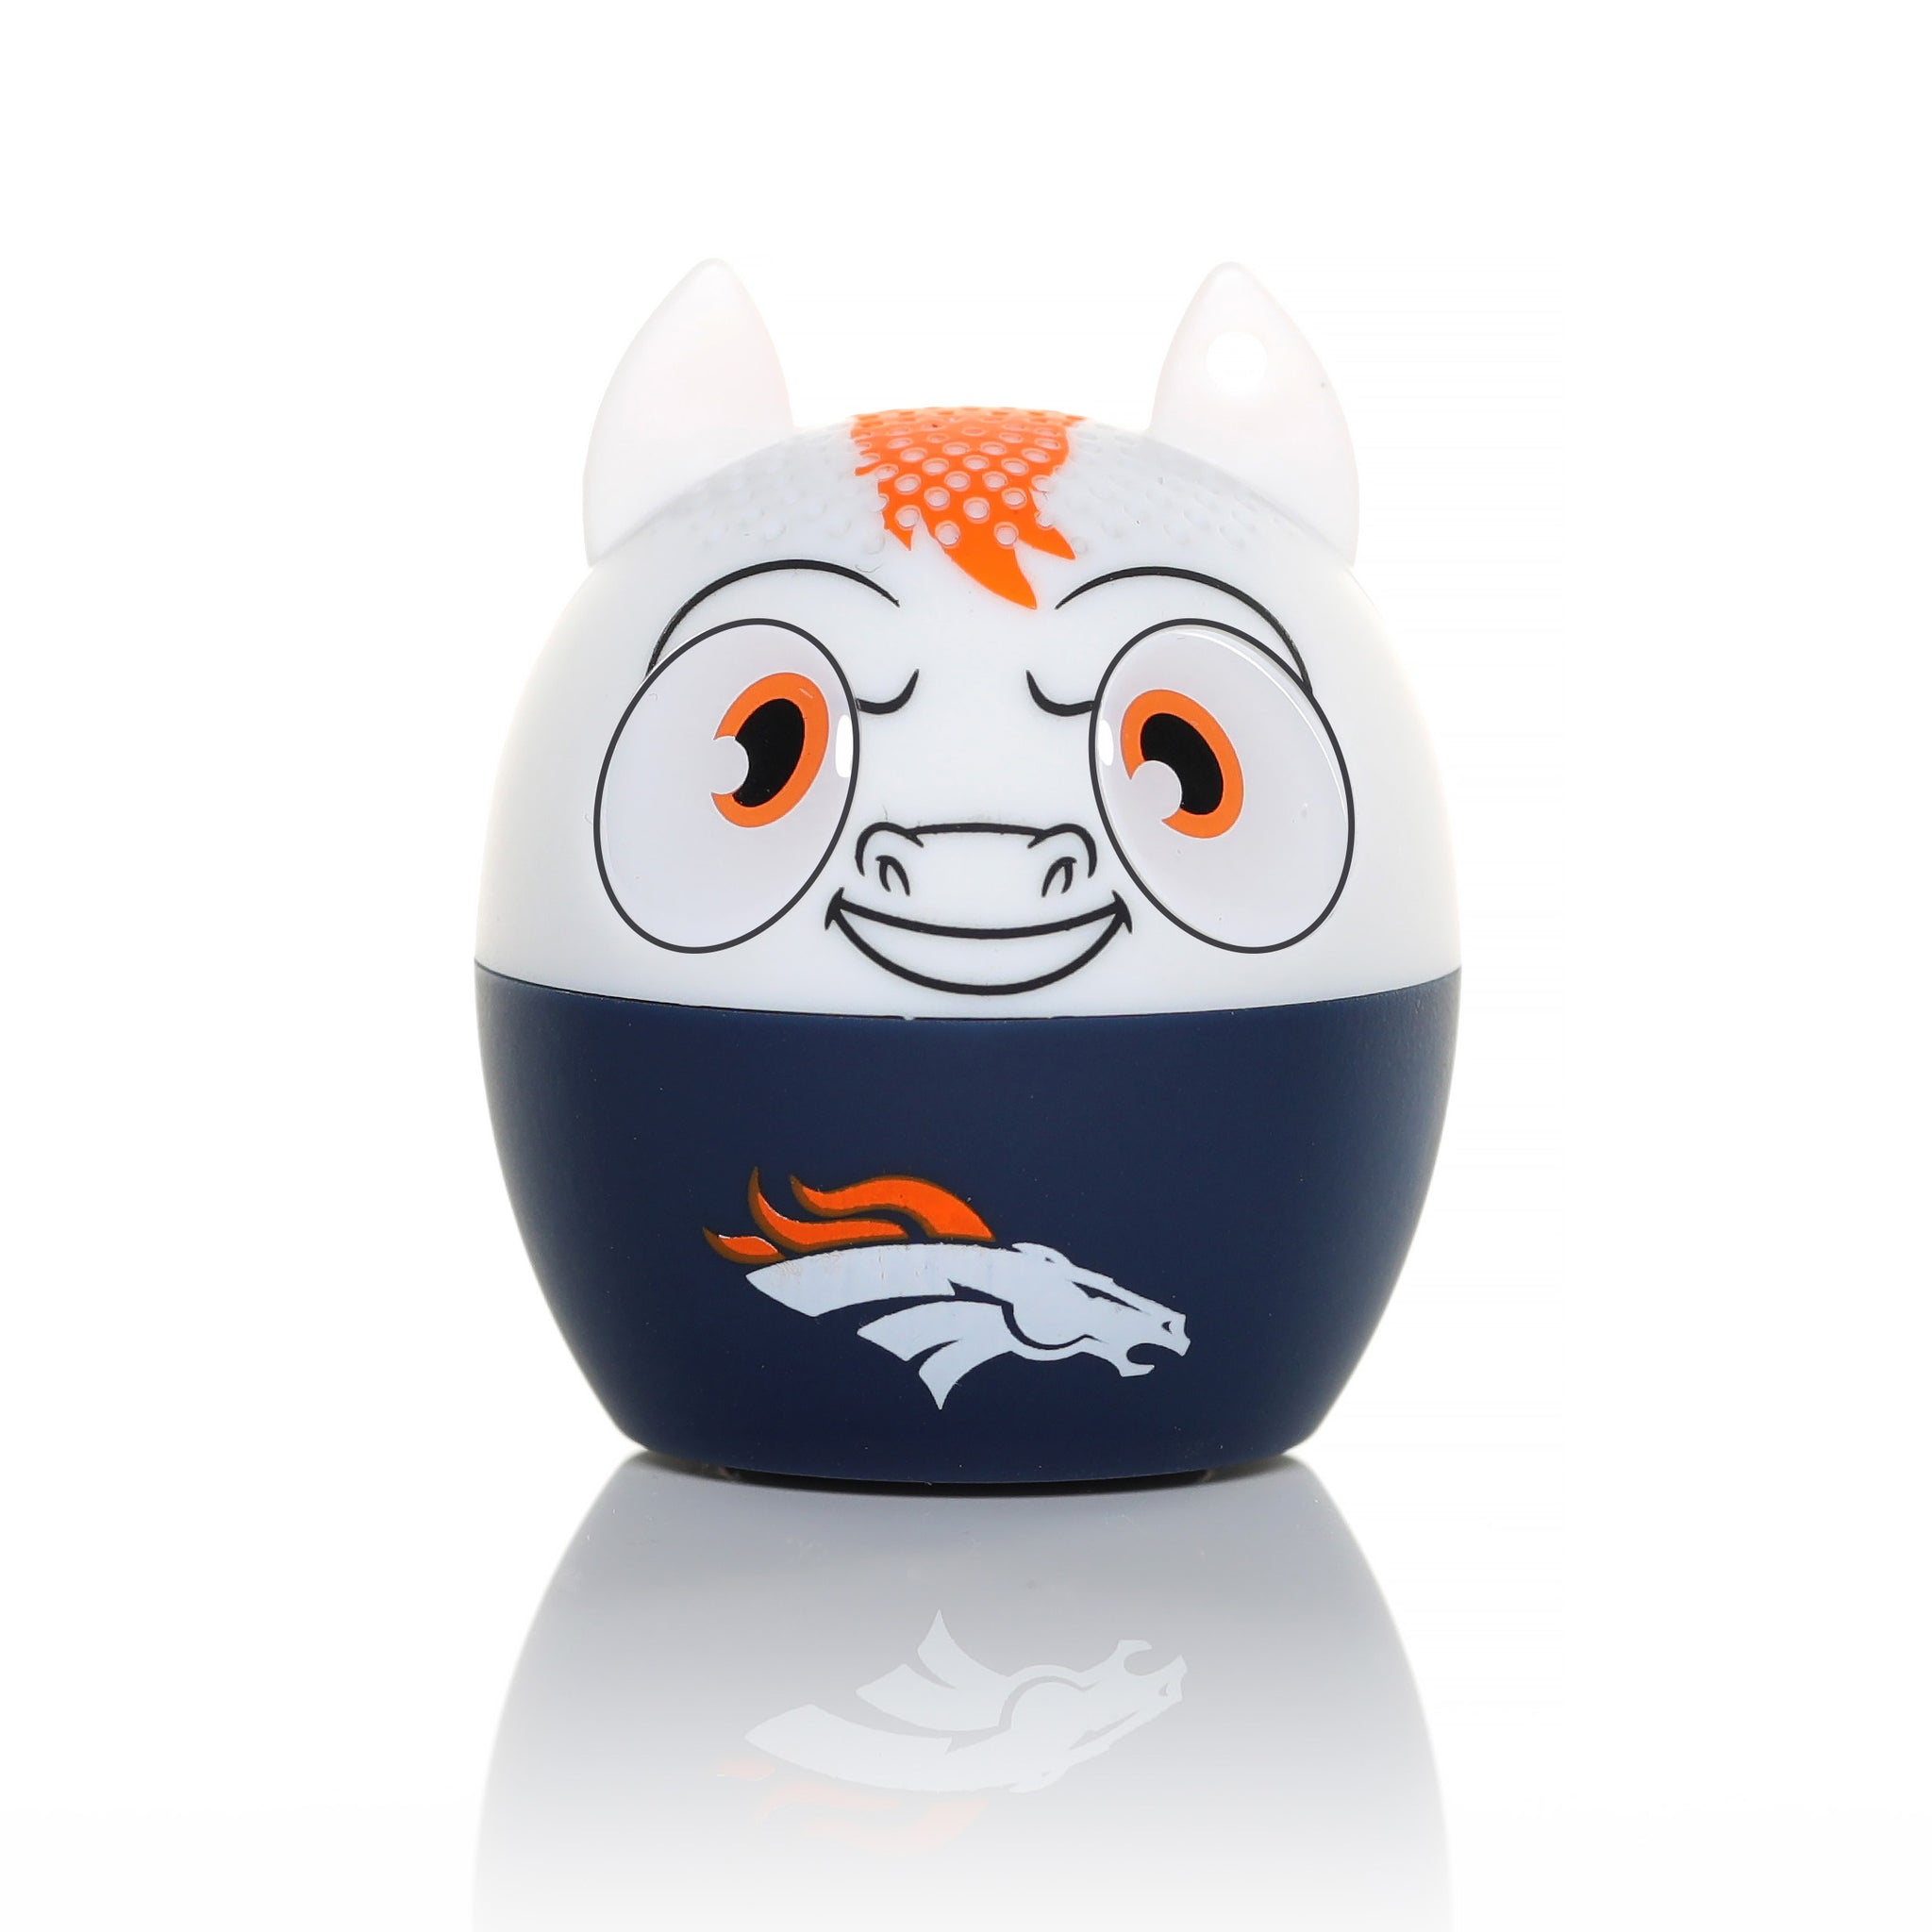 Bitty Boomers - Denver Broncos